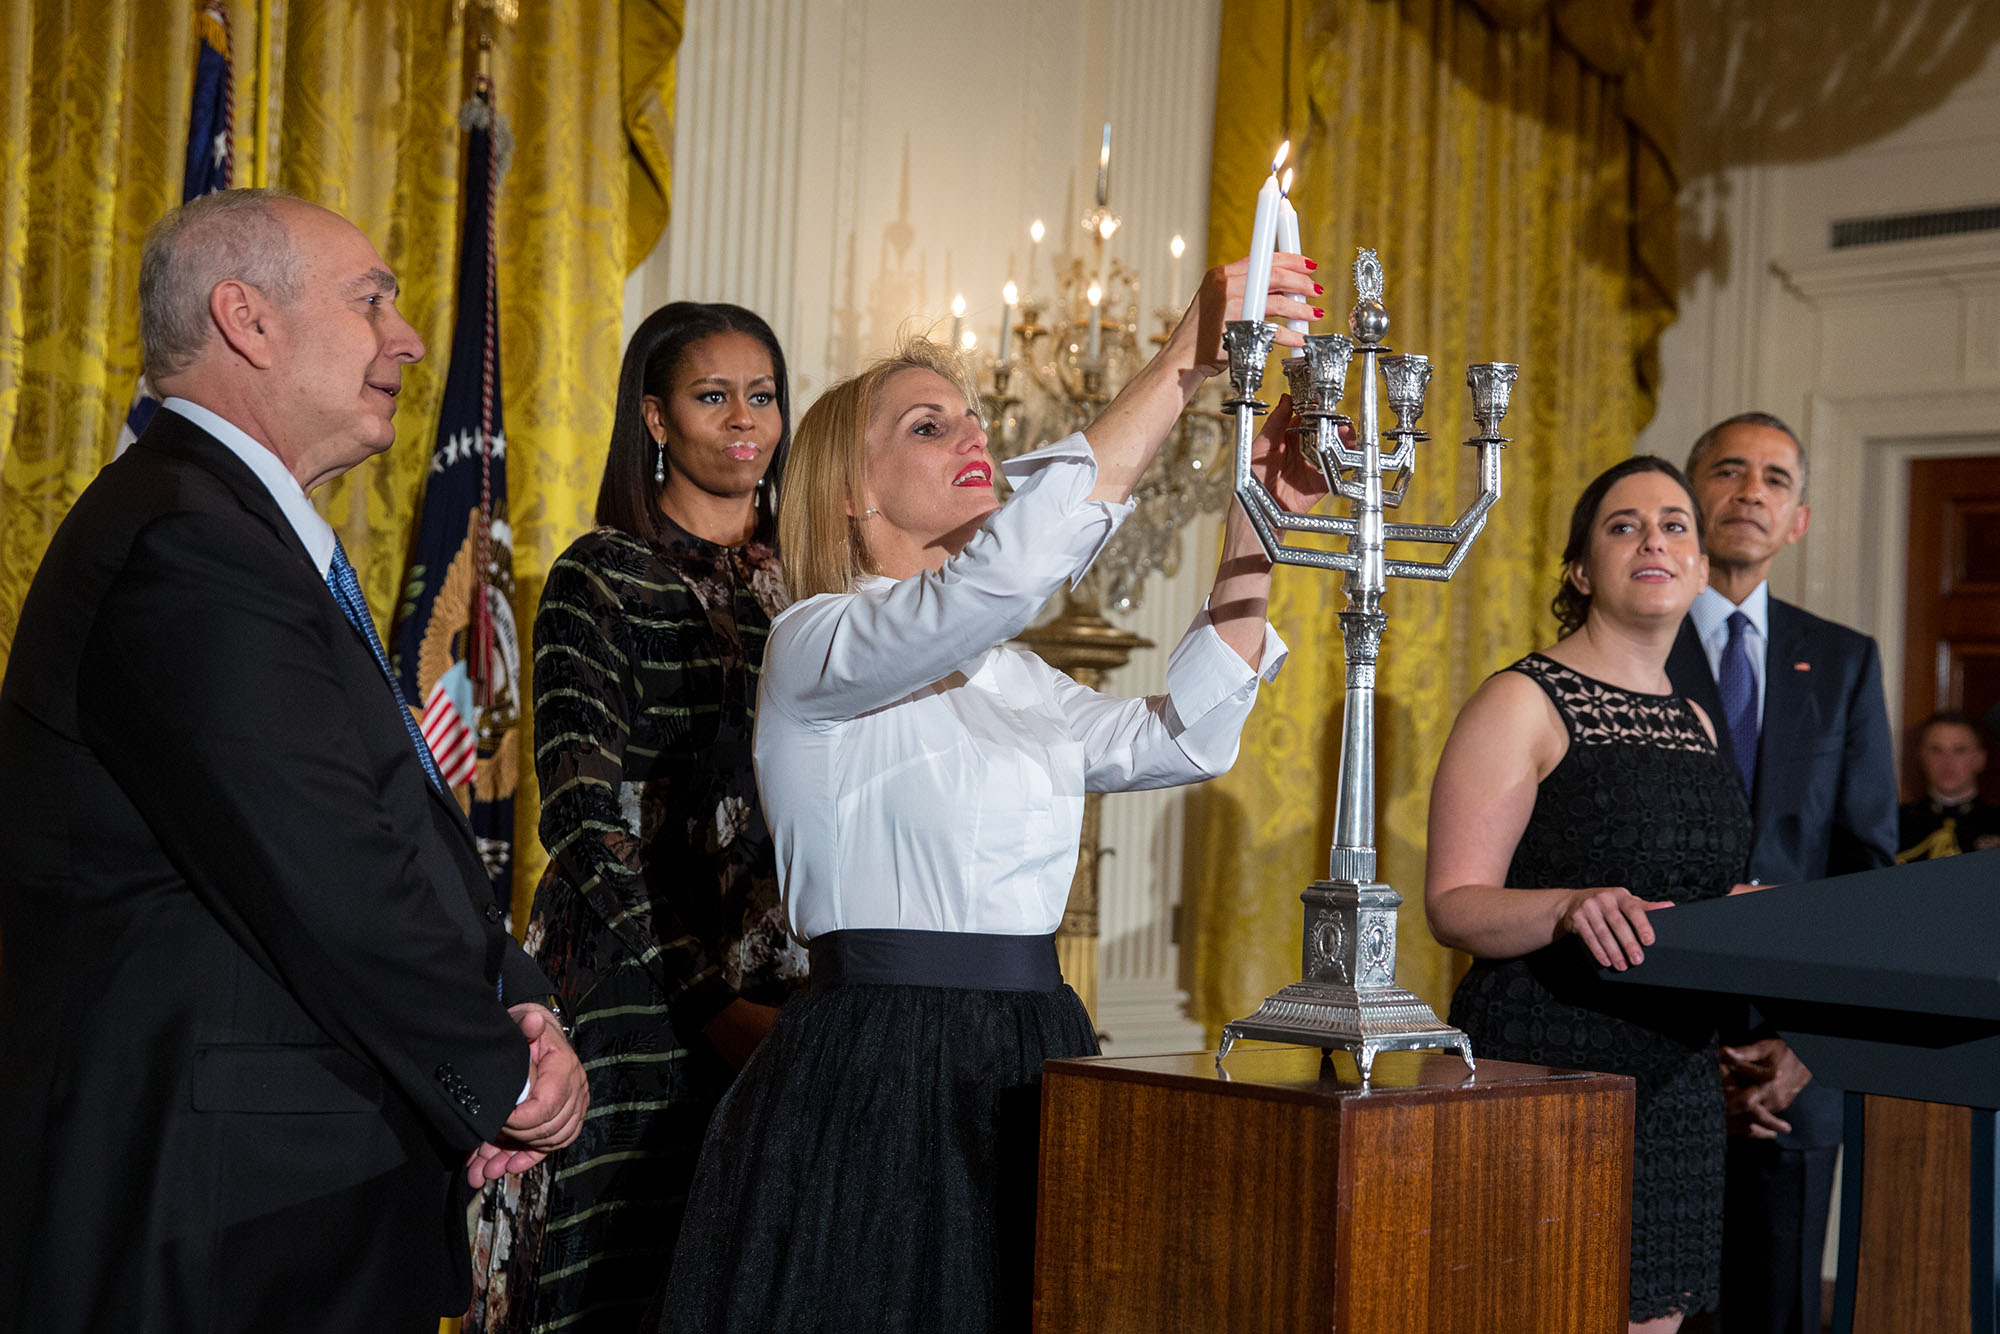 President Barack Obama, First Lady Michelle and Rabbi Rachel Isaacs join Chemi Peres and Mika Almog for the menorah lighting during Hanukkah in the East Room of the White House, Dec. 14, 2016. (Official White House Photo by Chuck Kennedy)